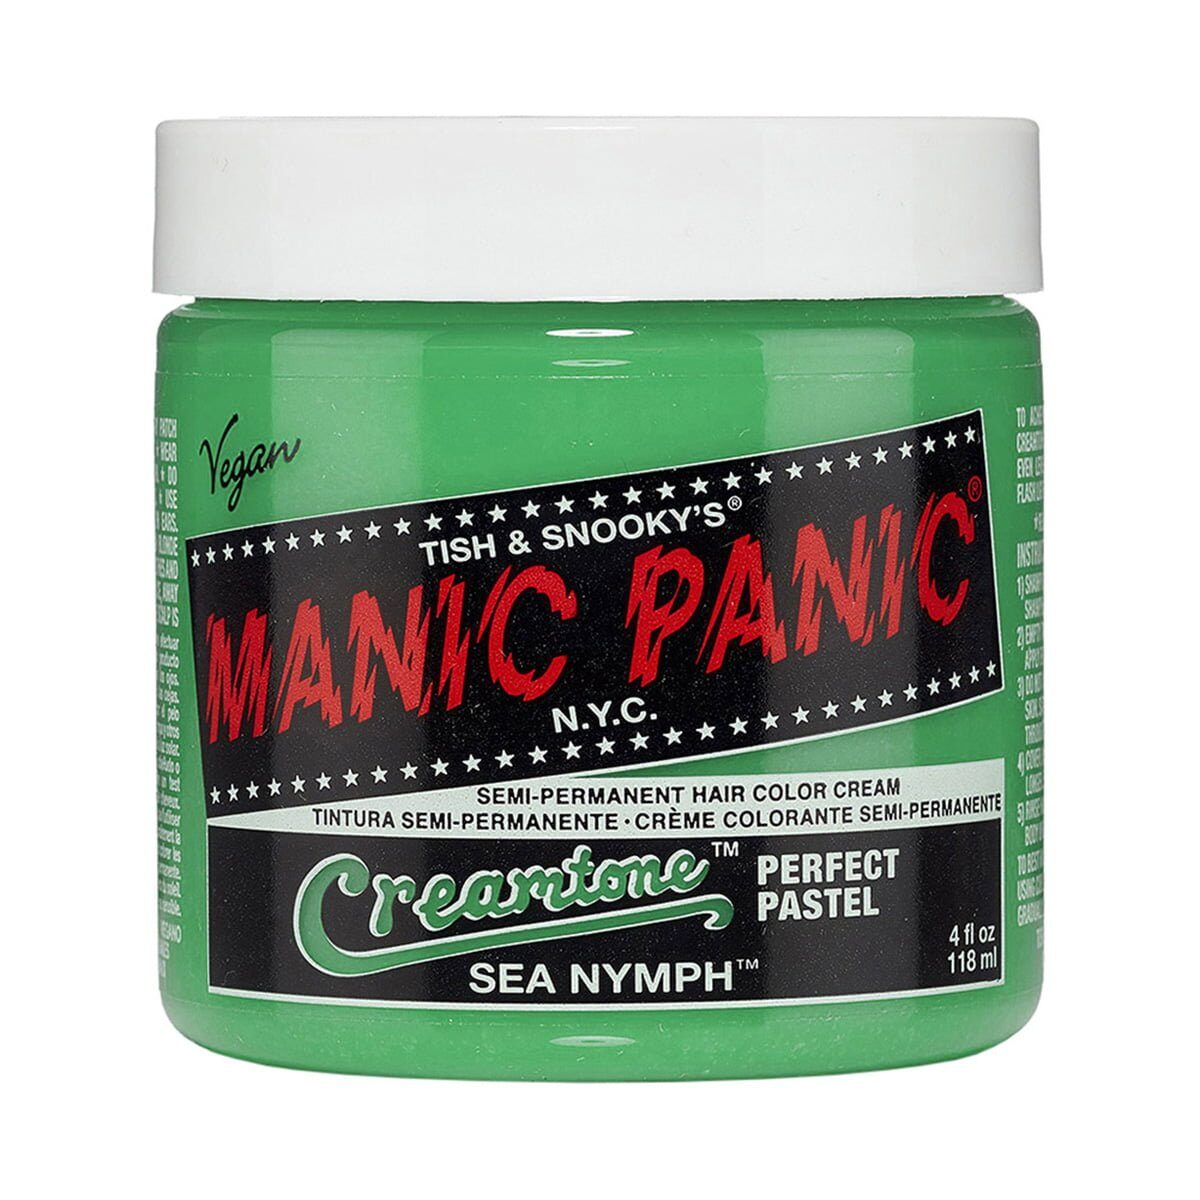 manic panic creamtones grønn pastell hårfarge 118 ml sea nymph pot 70485